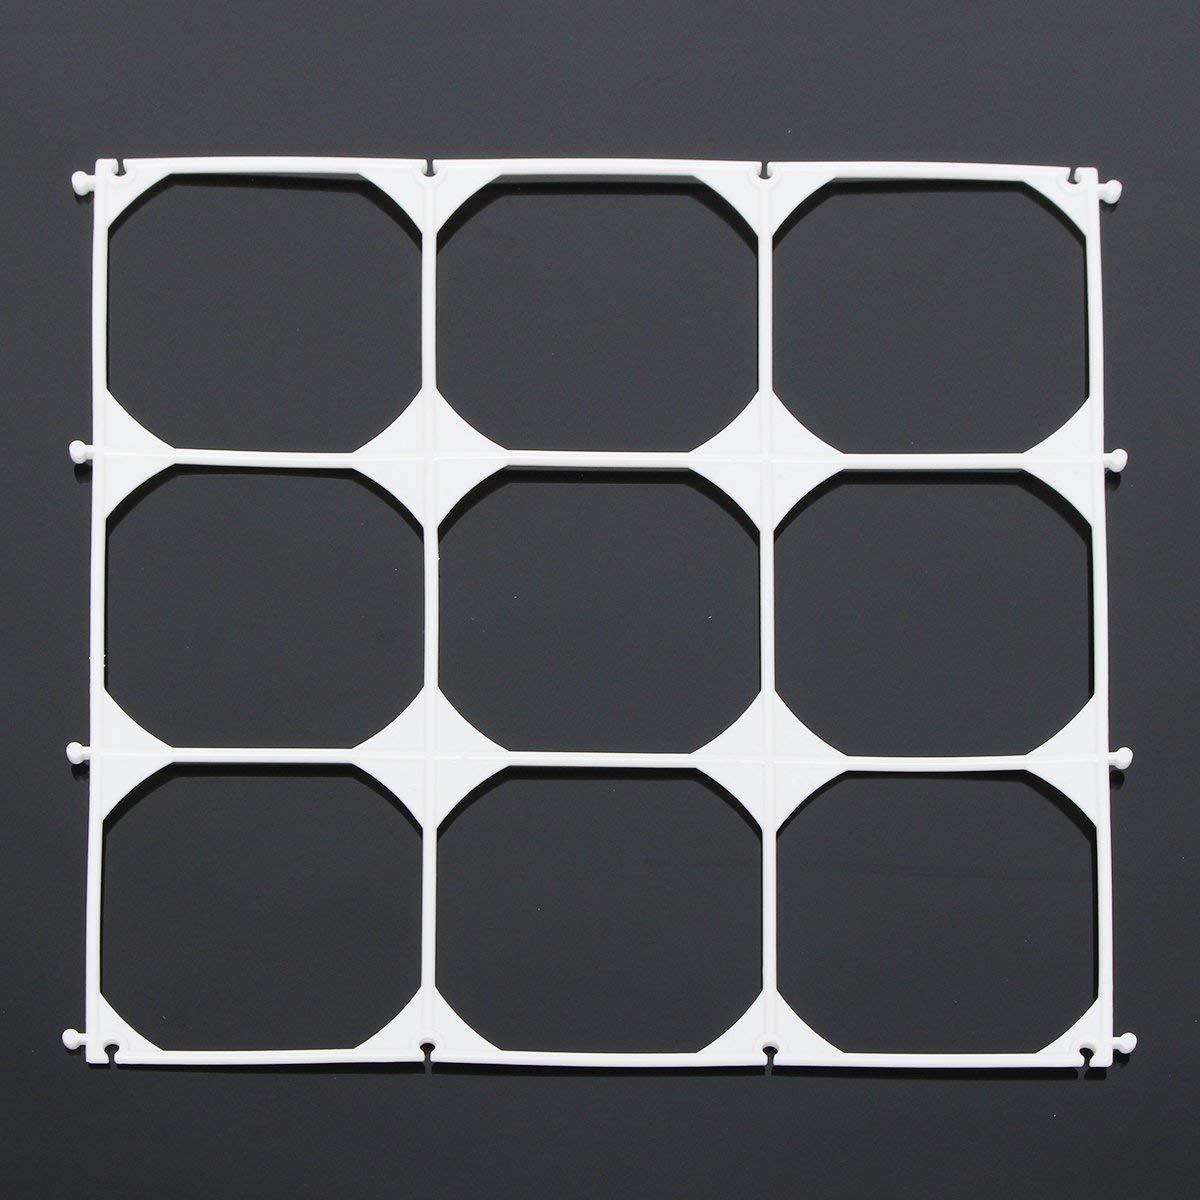 10Pcs Balloon Grid Frame Square 9 Grids Modeling Party Balloons Wall Wedding Decoration SINGLE ITEM